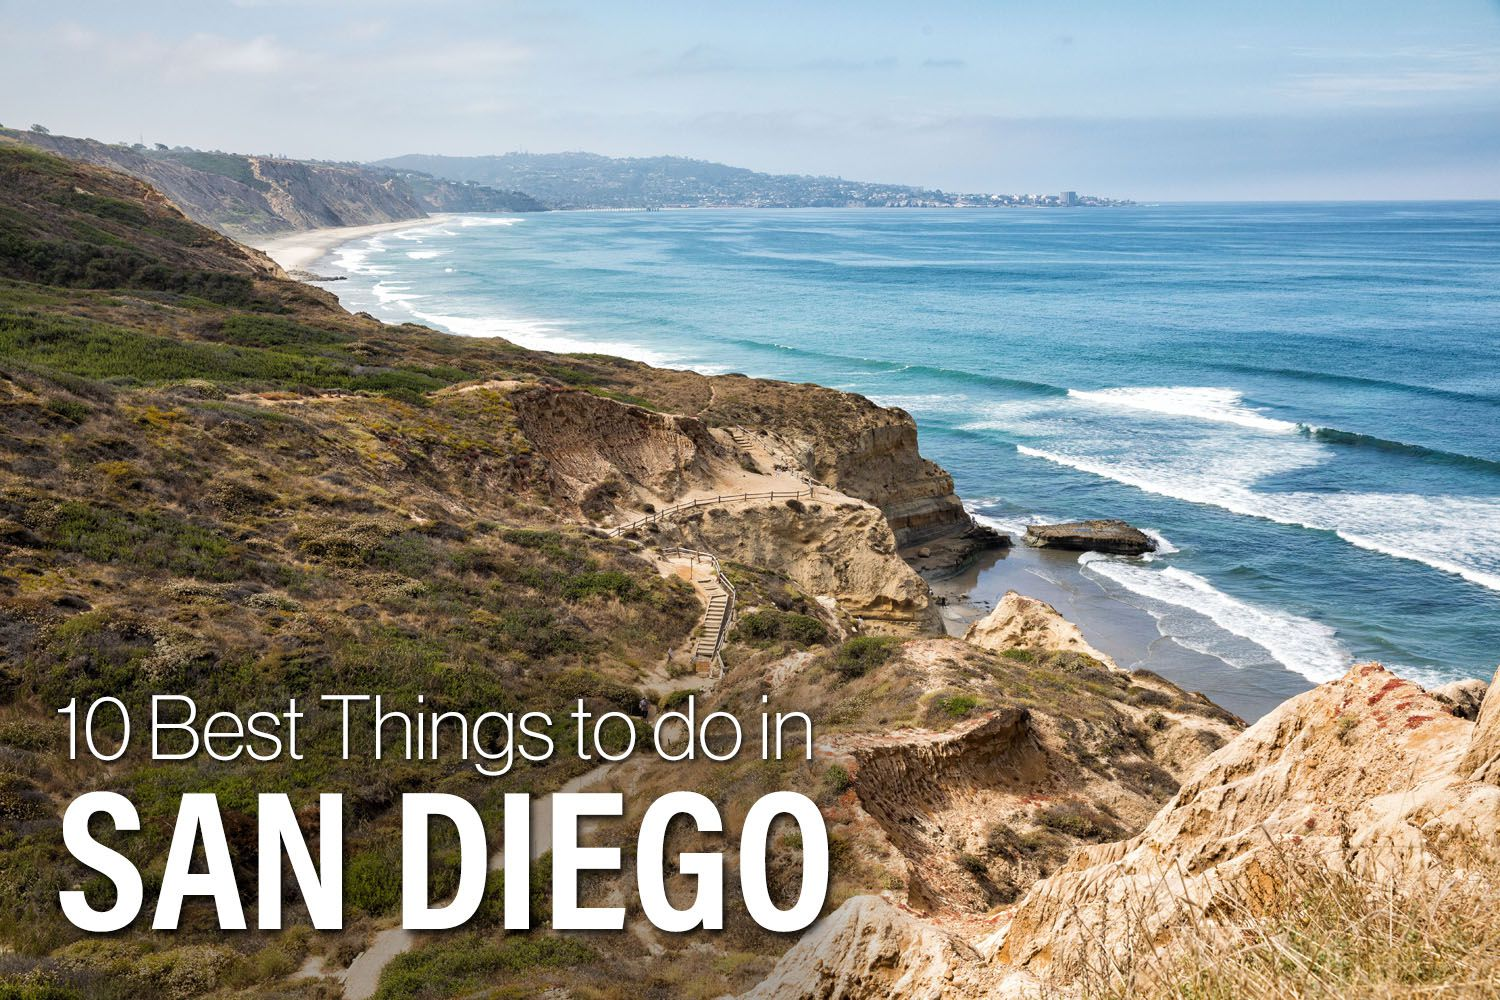 San Diego to do List